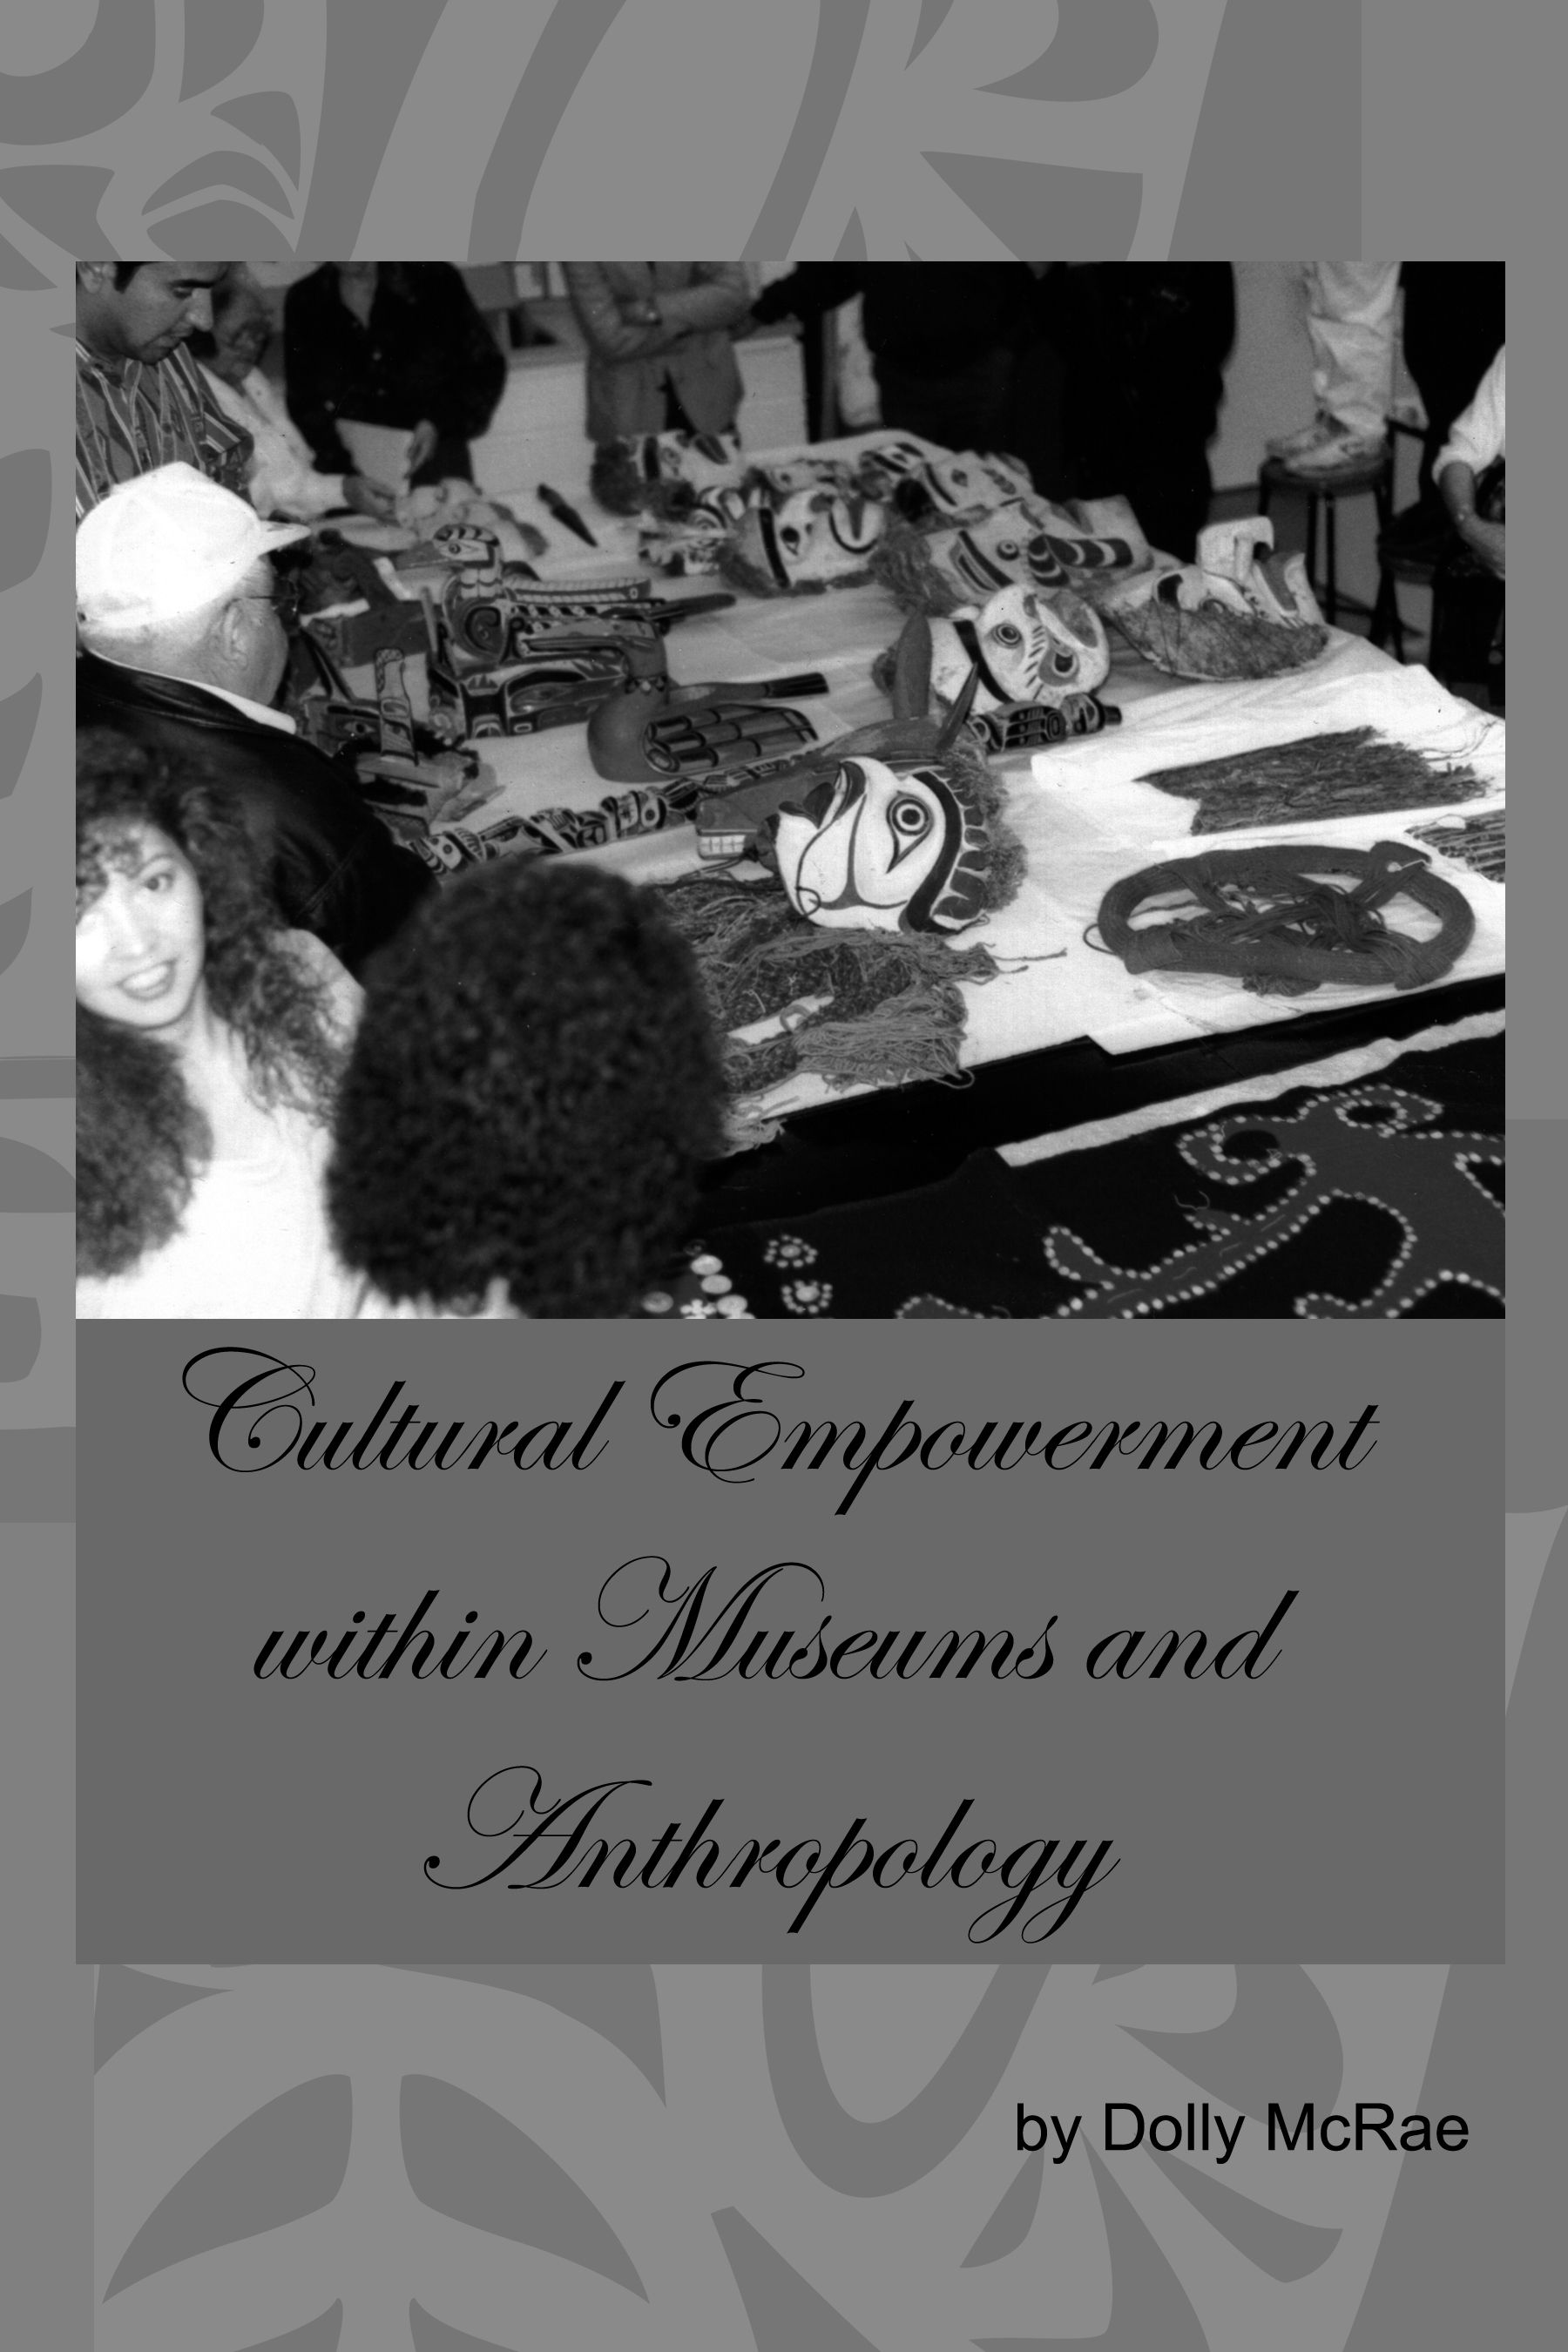 This book, Cultural Empowerment within Museums and Anthropology, was designed to give some practical suggestions for an improved relationship between Museums and the First Peoples of North America.